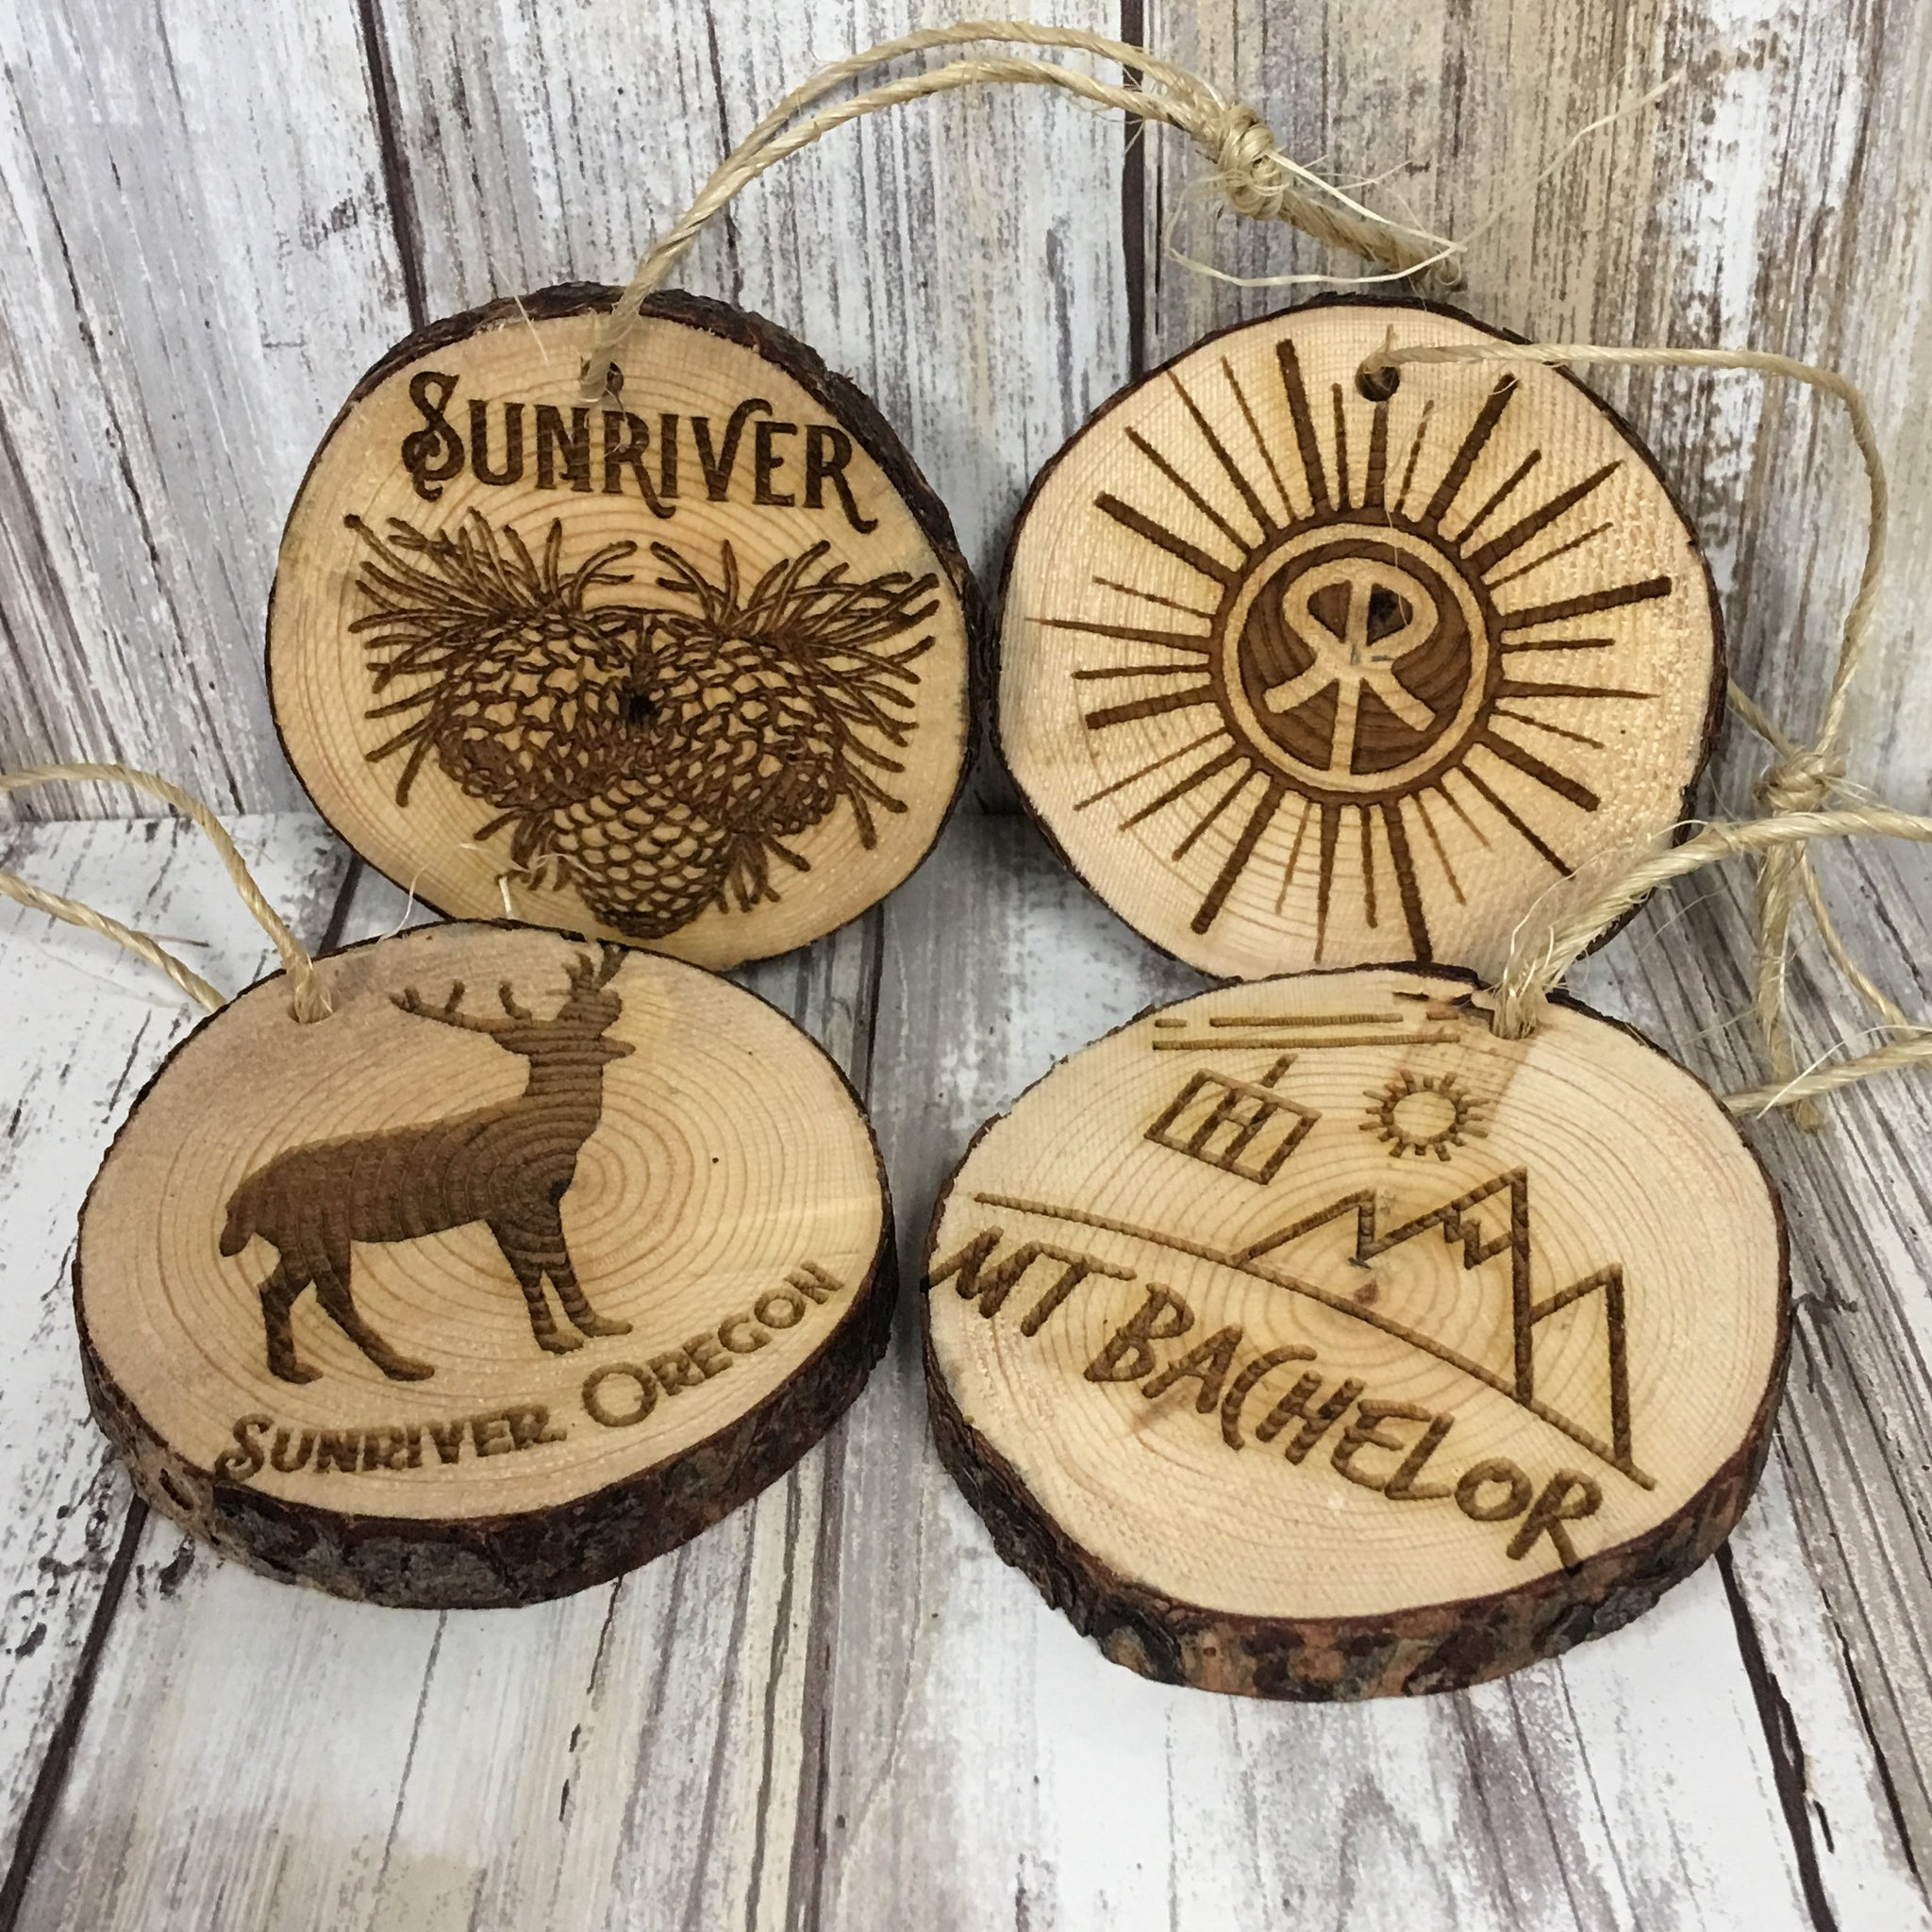 Sunriver & Mt. Bachelor Log Slice Christmas Tree Ornaments